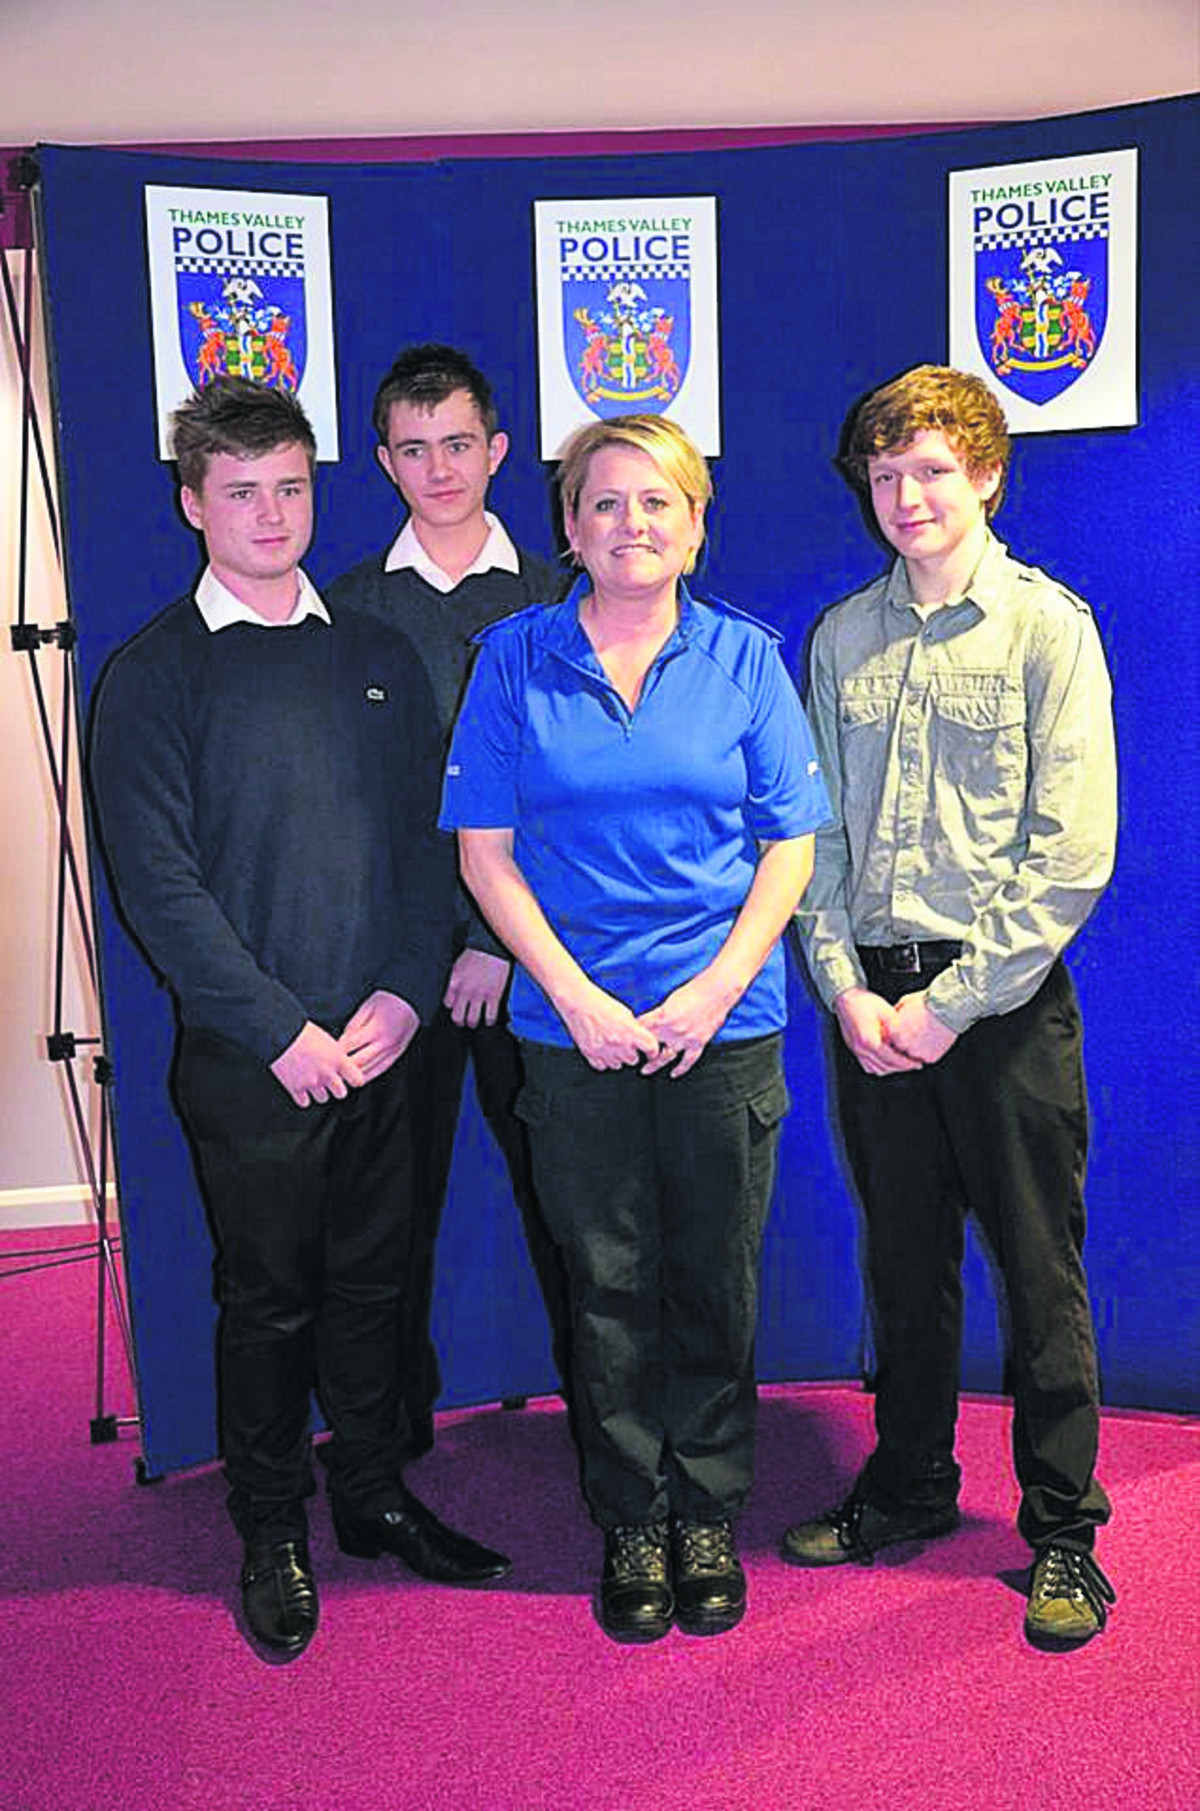 Tyler Walker, Ollie Hinchcliffe and Nicky Wishart are pictured above with Pcso Helen Keen.